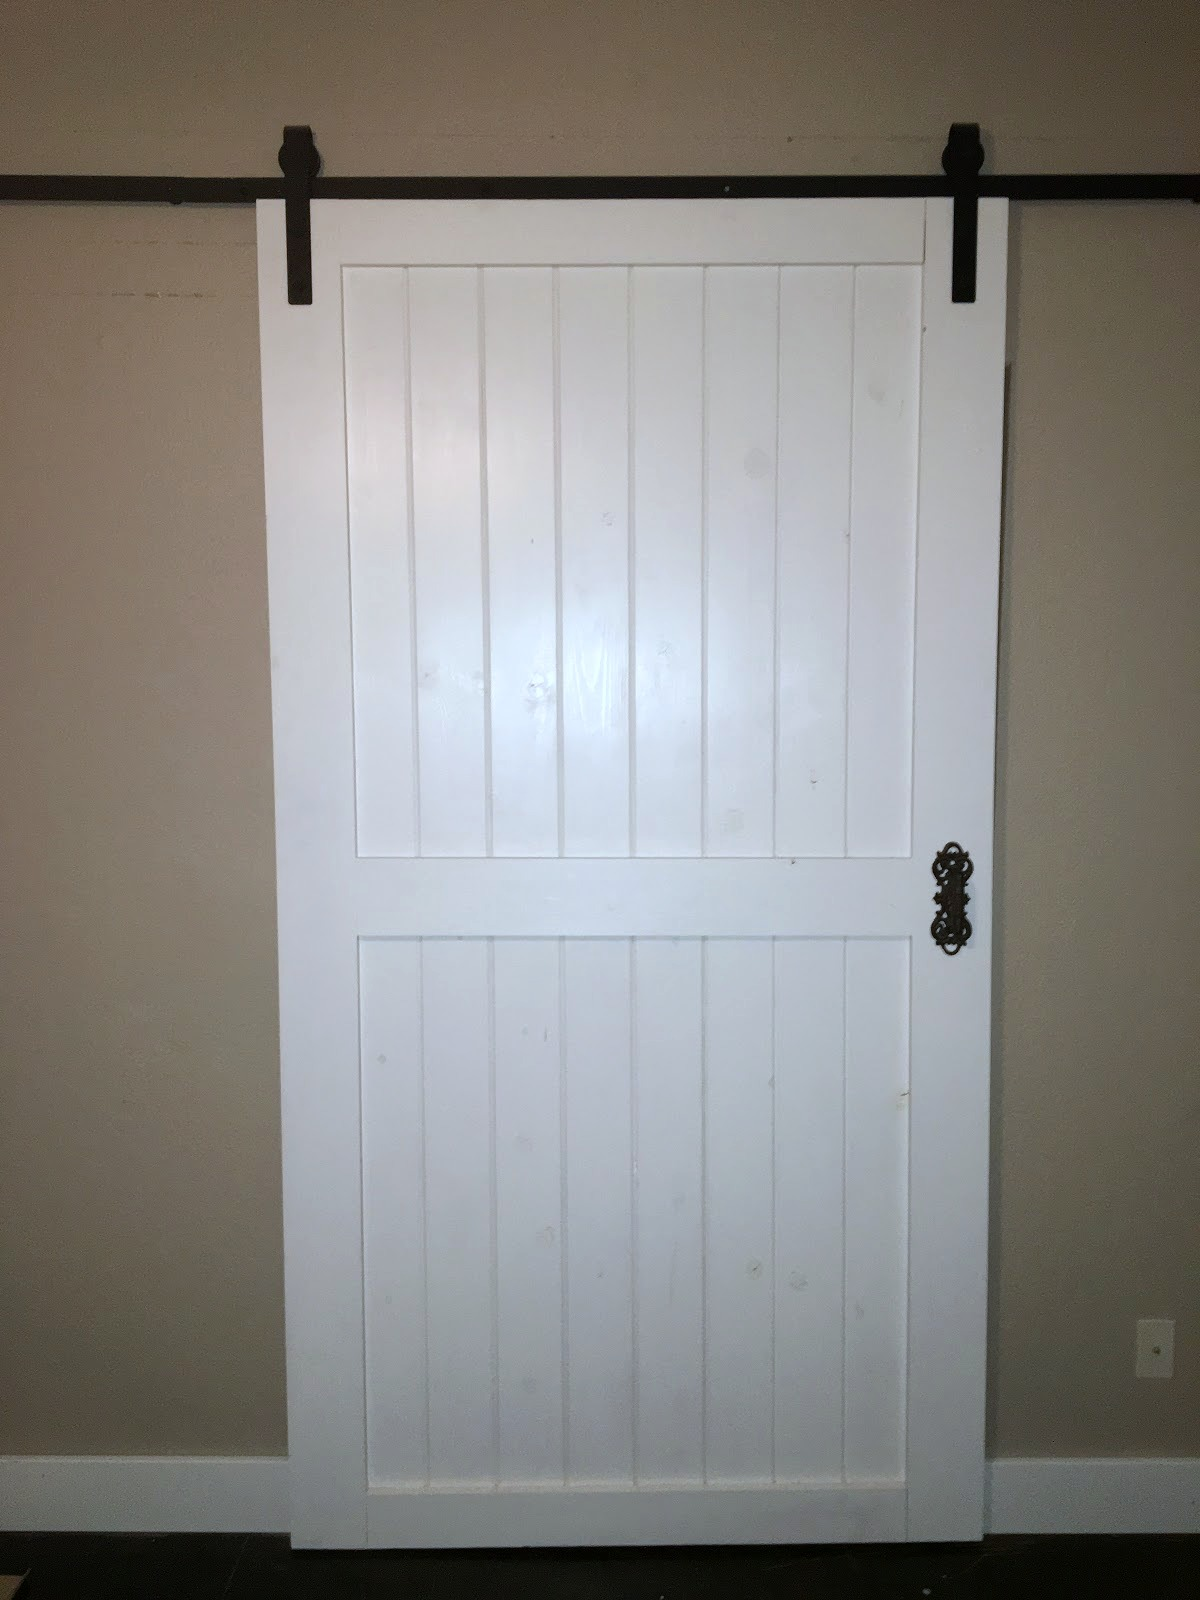 Build This Cheap And Easy DIY Barn Door For Around $80! Plus Tips For  Finding